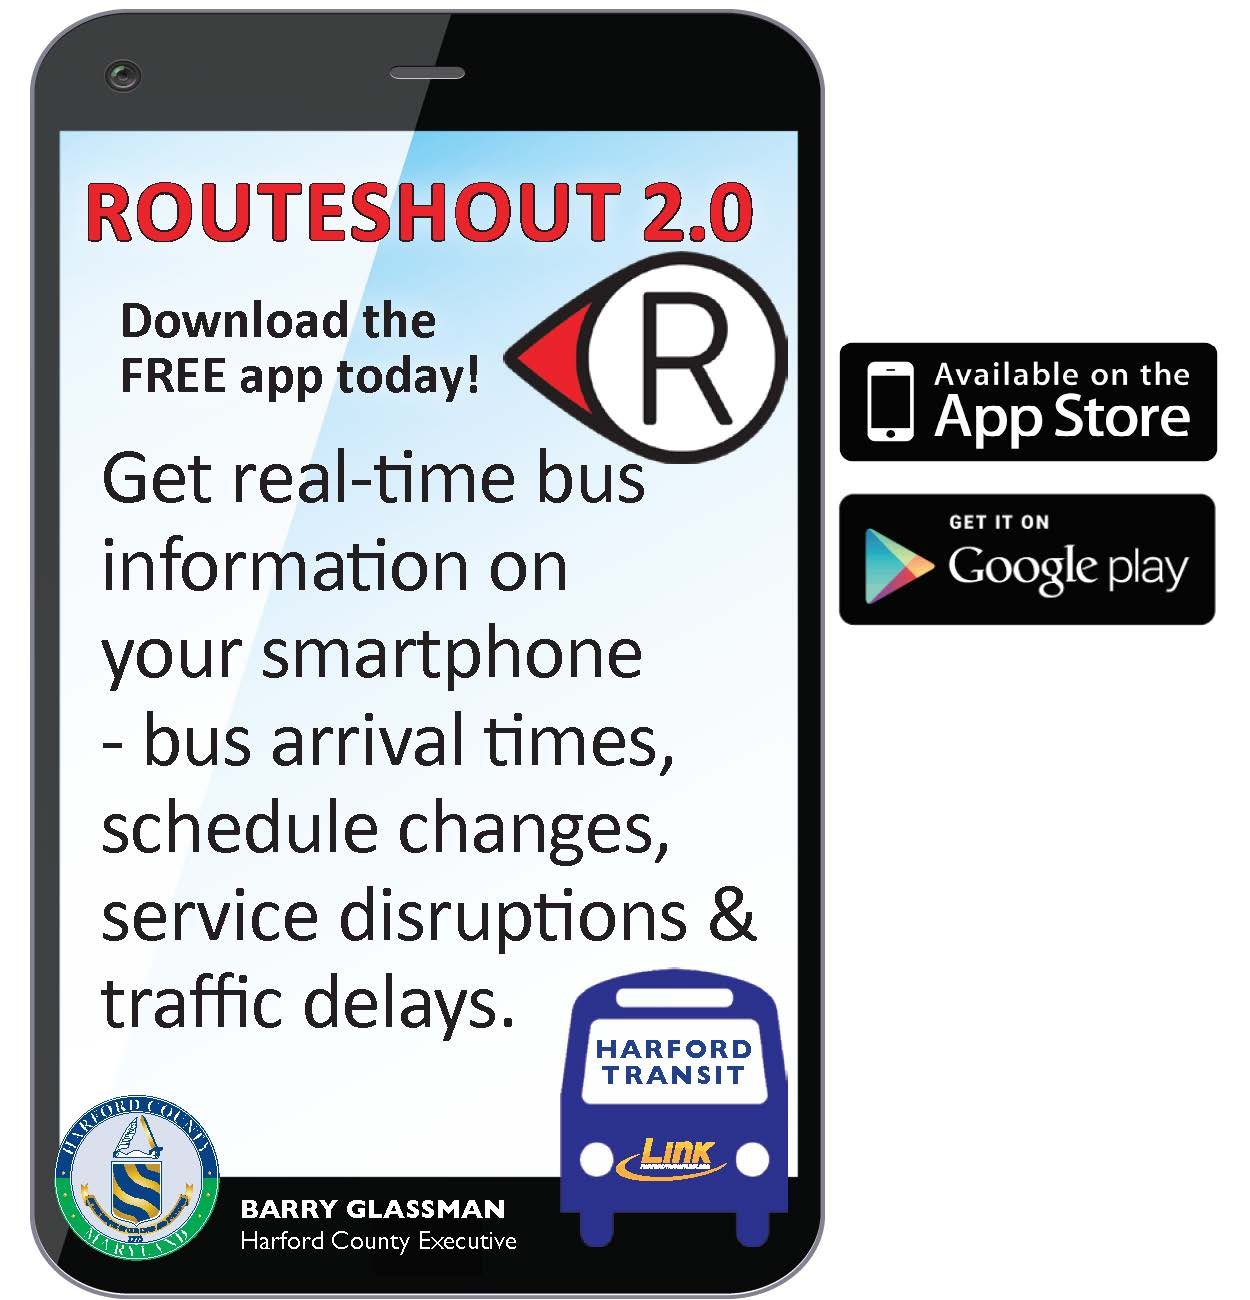 RouteShout Cell Phone Icon for Website